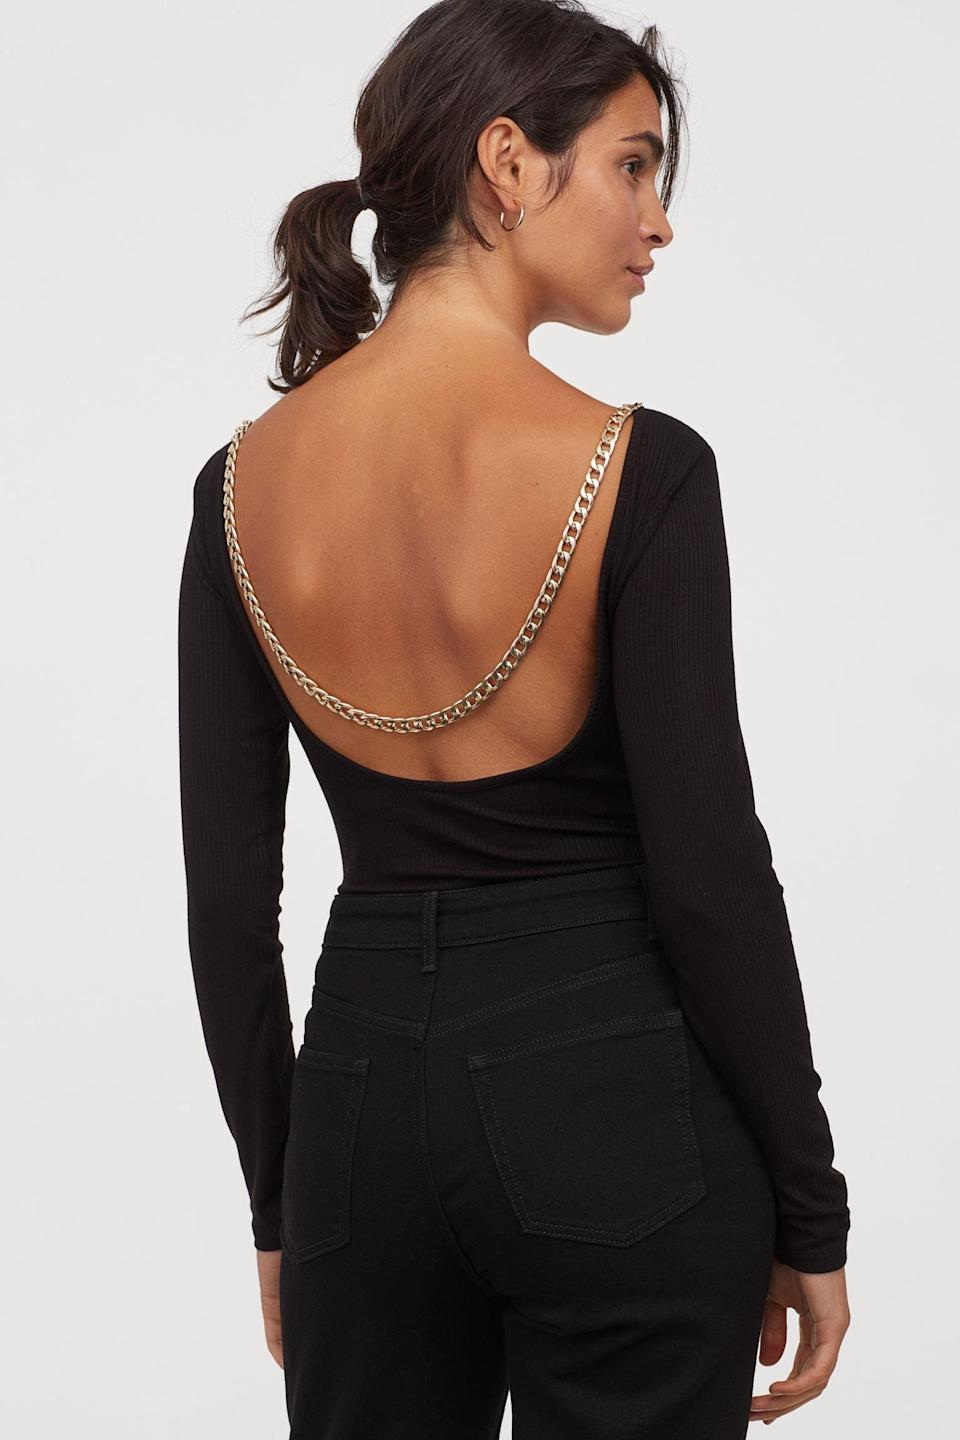 <p>It's all about the back of this <span>Ribbed Chain-detail Bodysuit</span> ($25). It's a stunning piece you'll wear for yourself or save for a special occasion.</p>